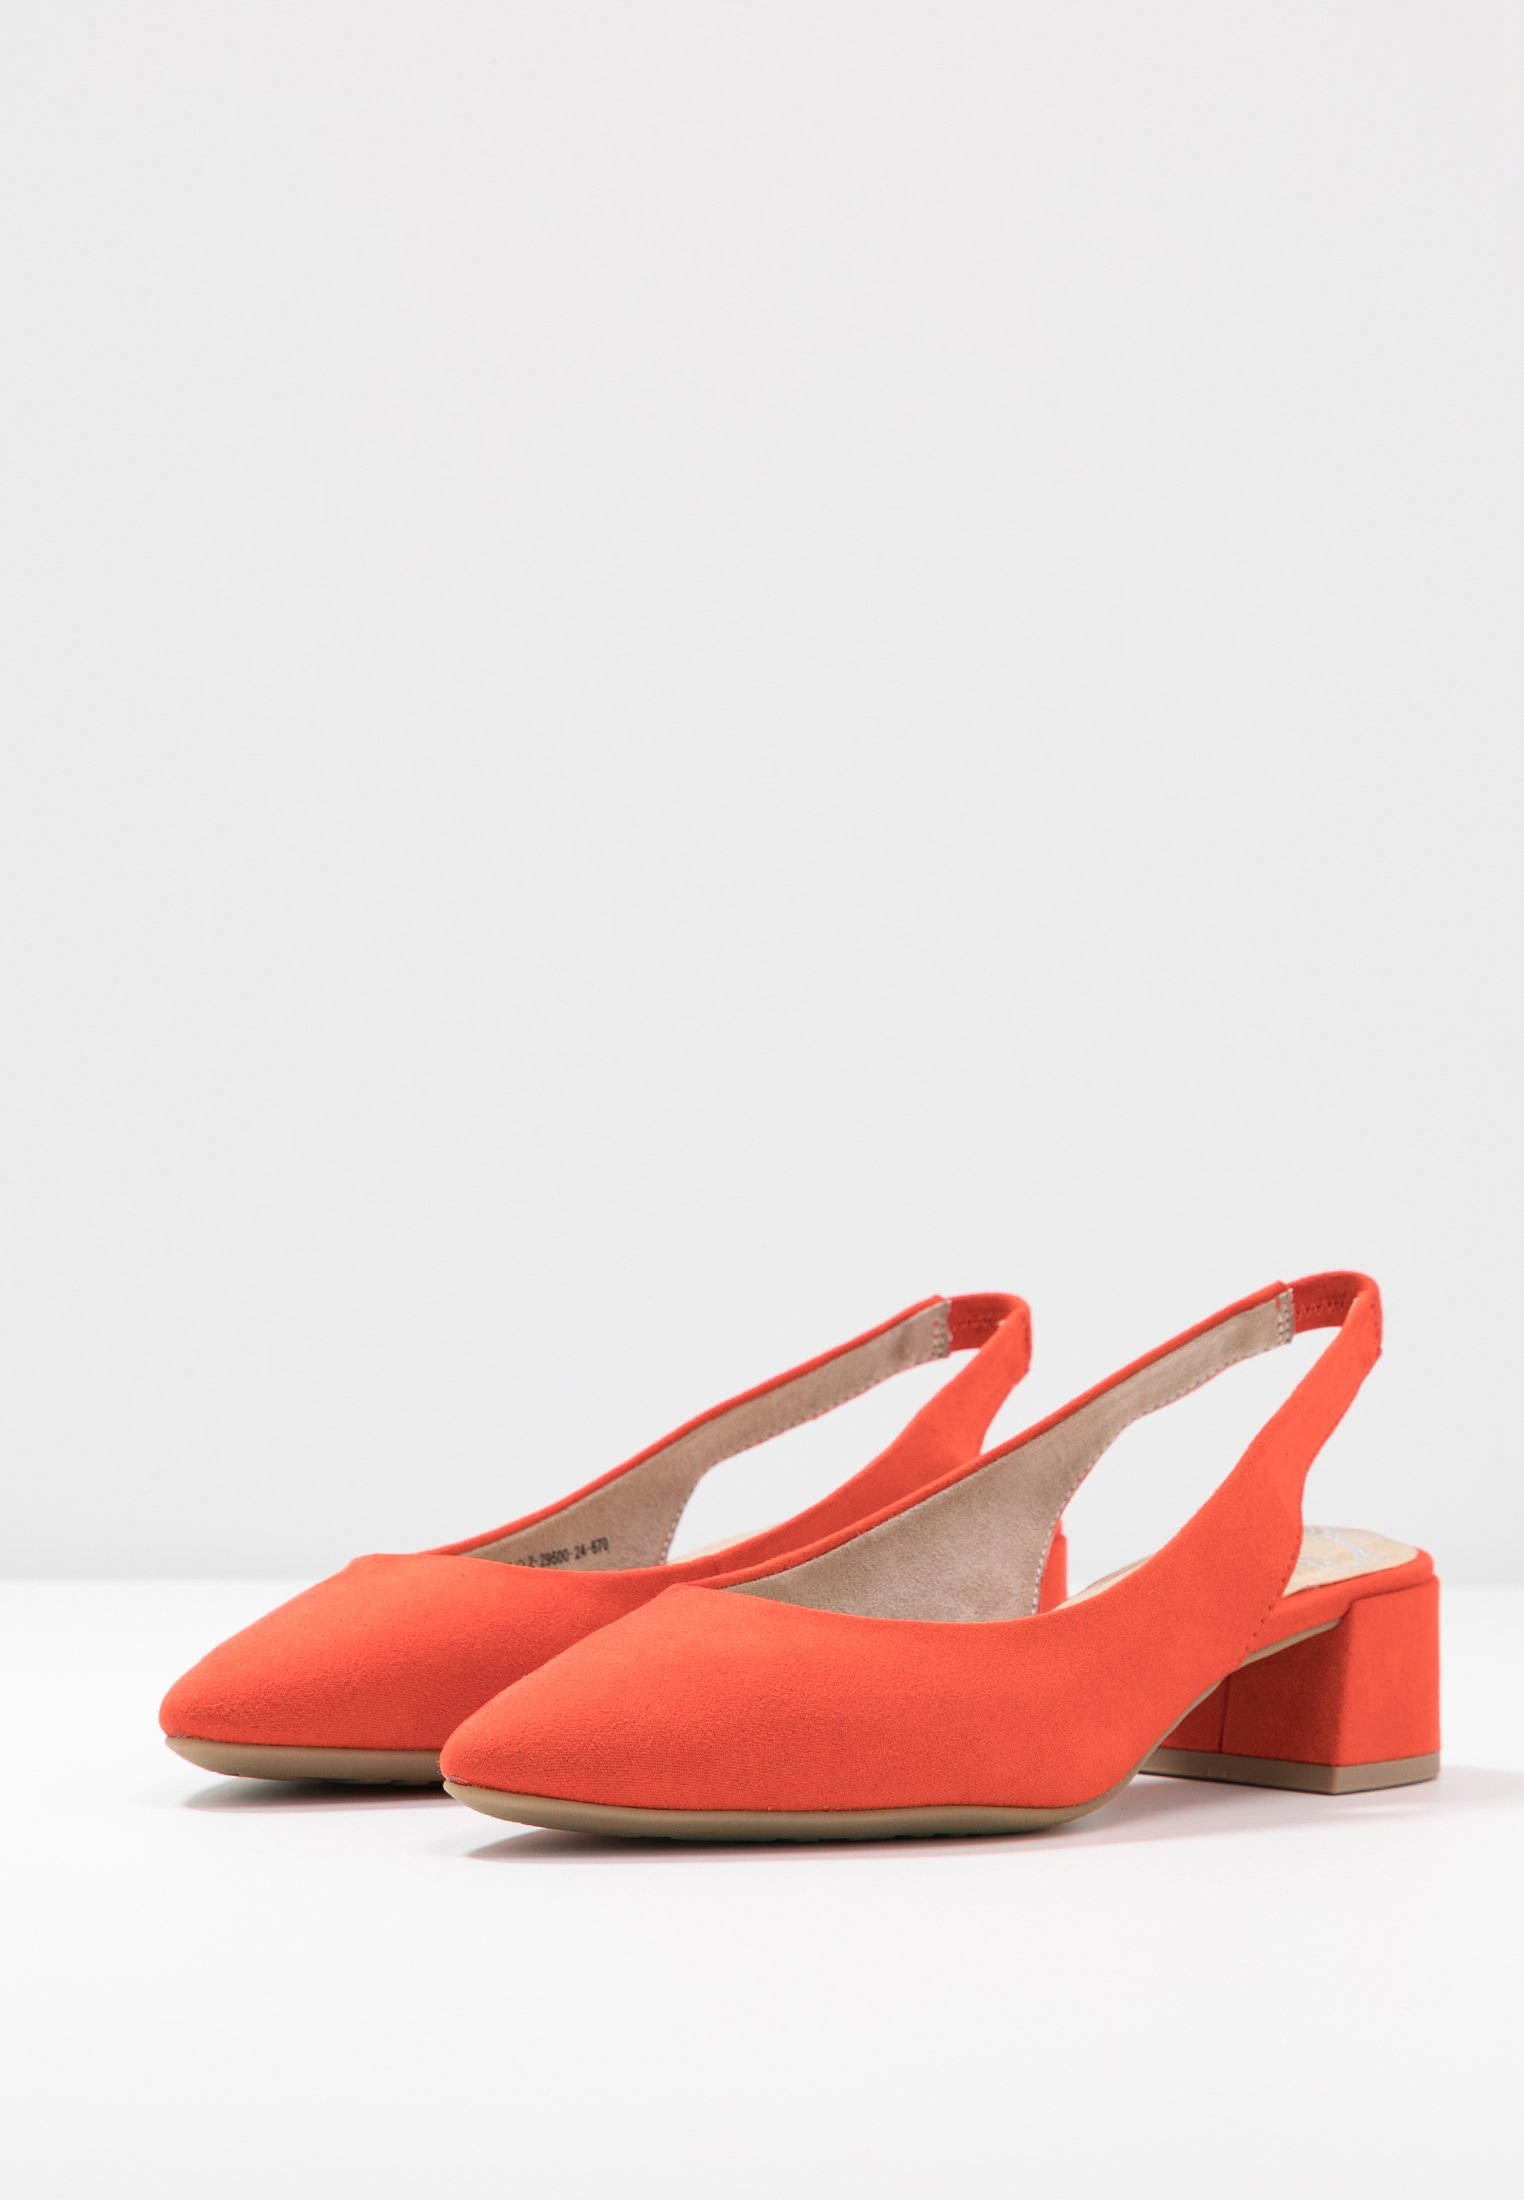 Marco Tozzi Pumps - Fire